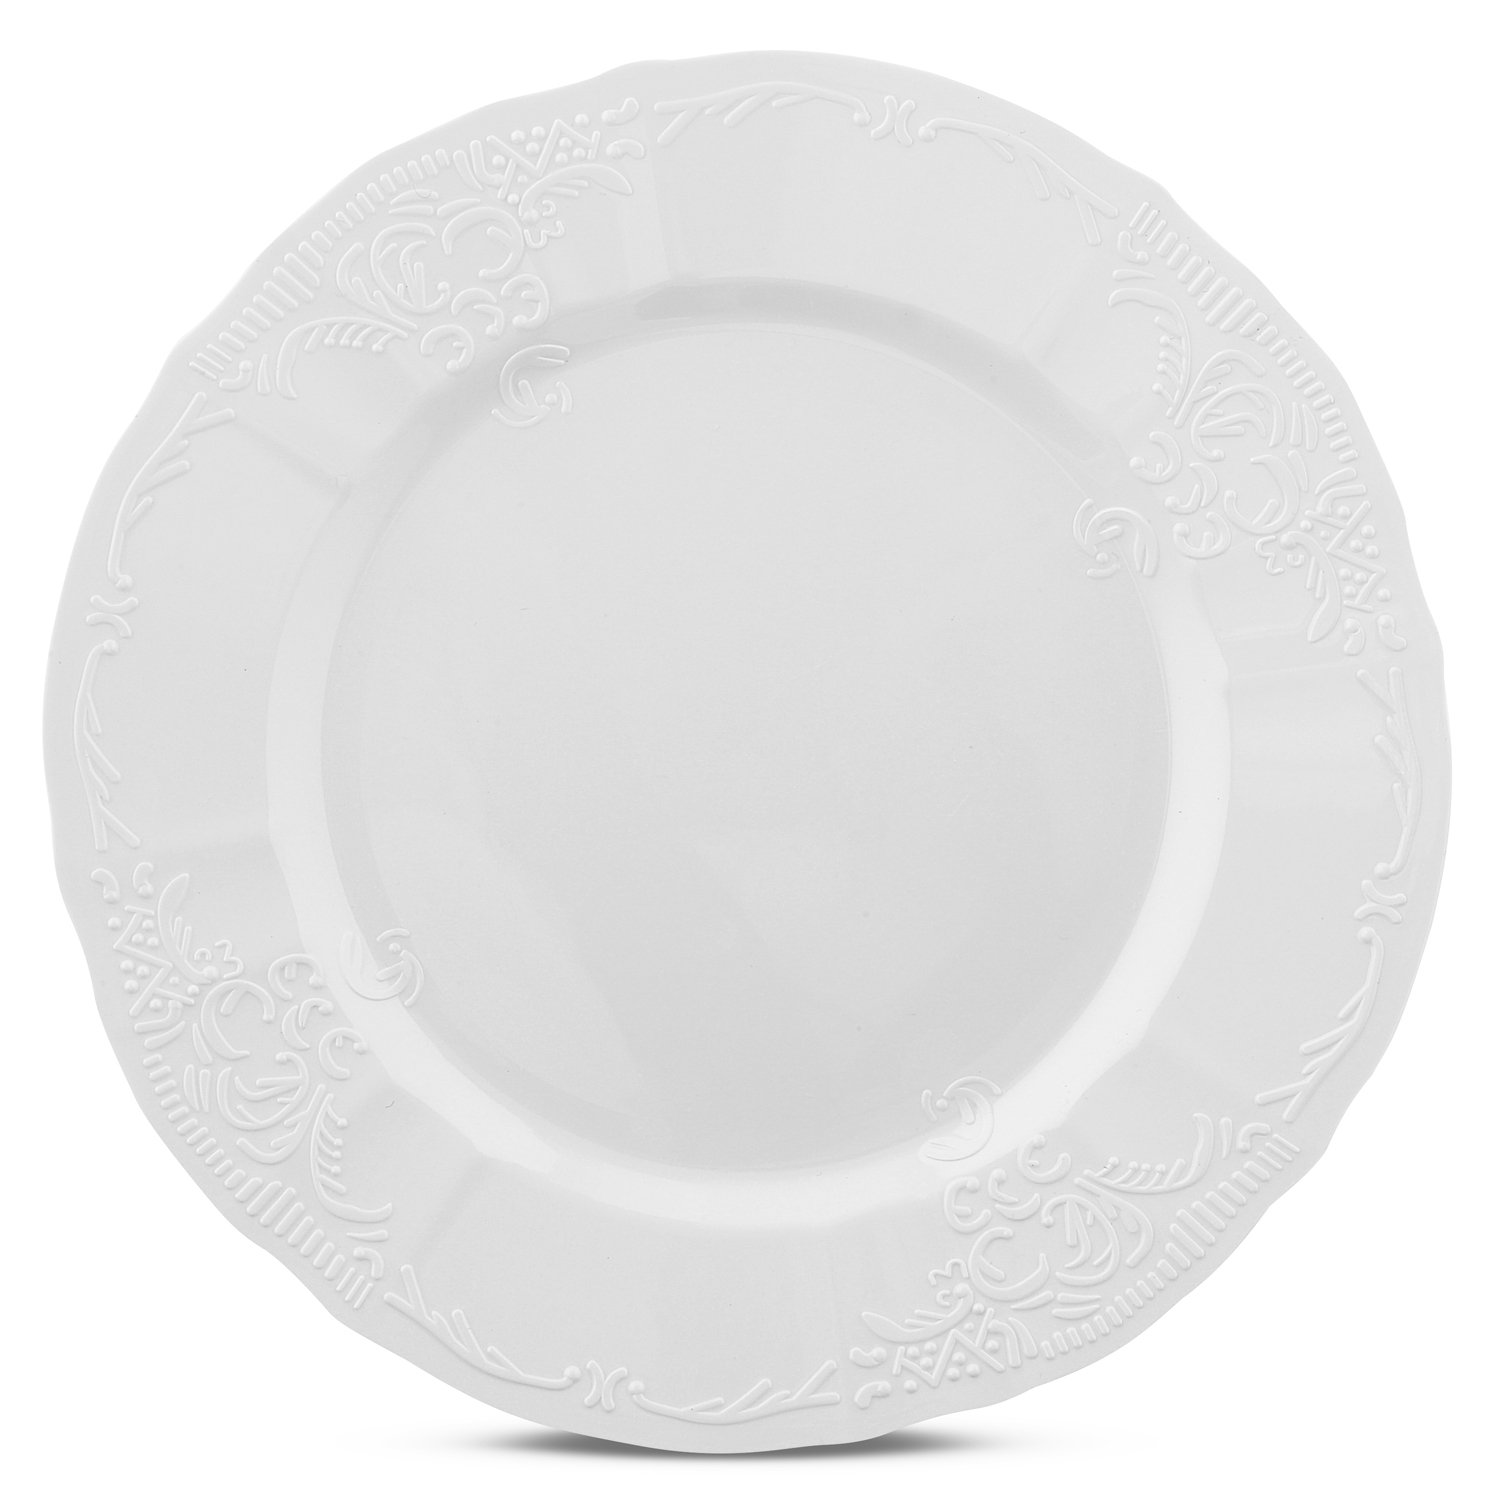 Disposable Wedding Party Plates with Embossed Flowers Design - Real China Look Plastic Dinnerware, Hard and Reusable (216 Piece Pack - White - 10'' Inch Round Scalloped)